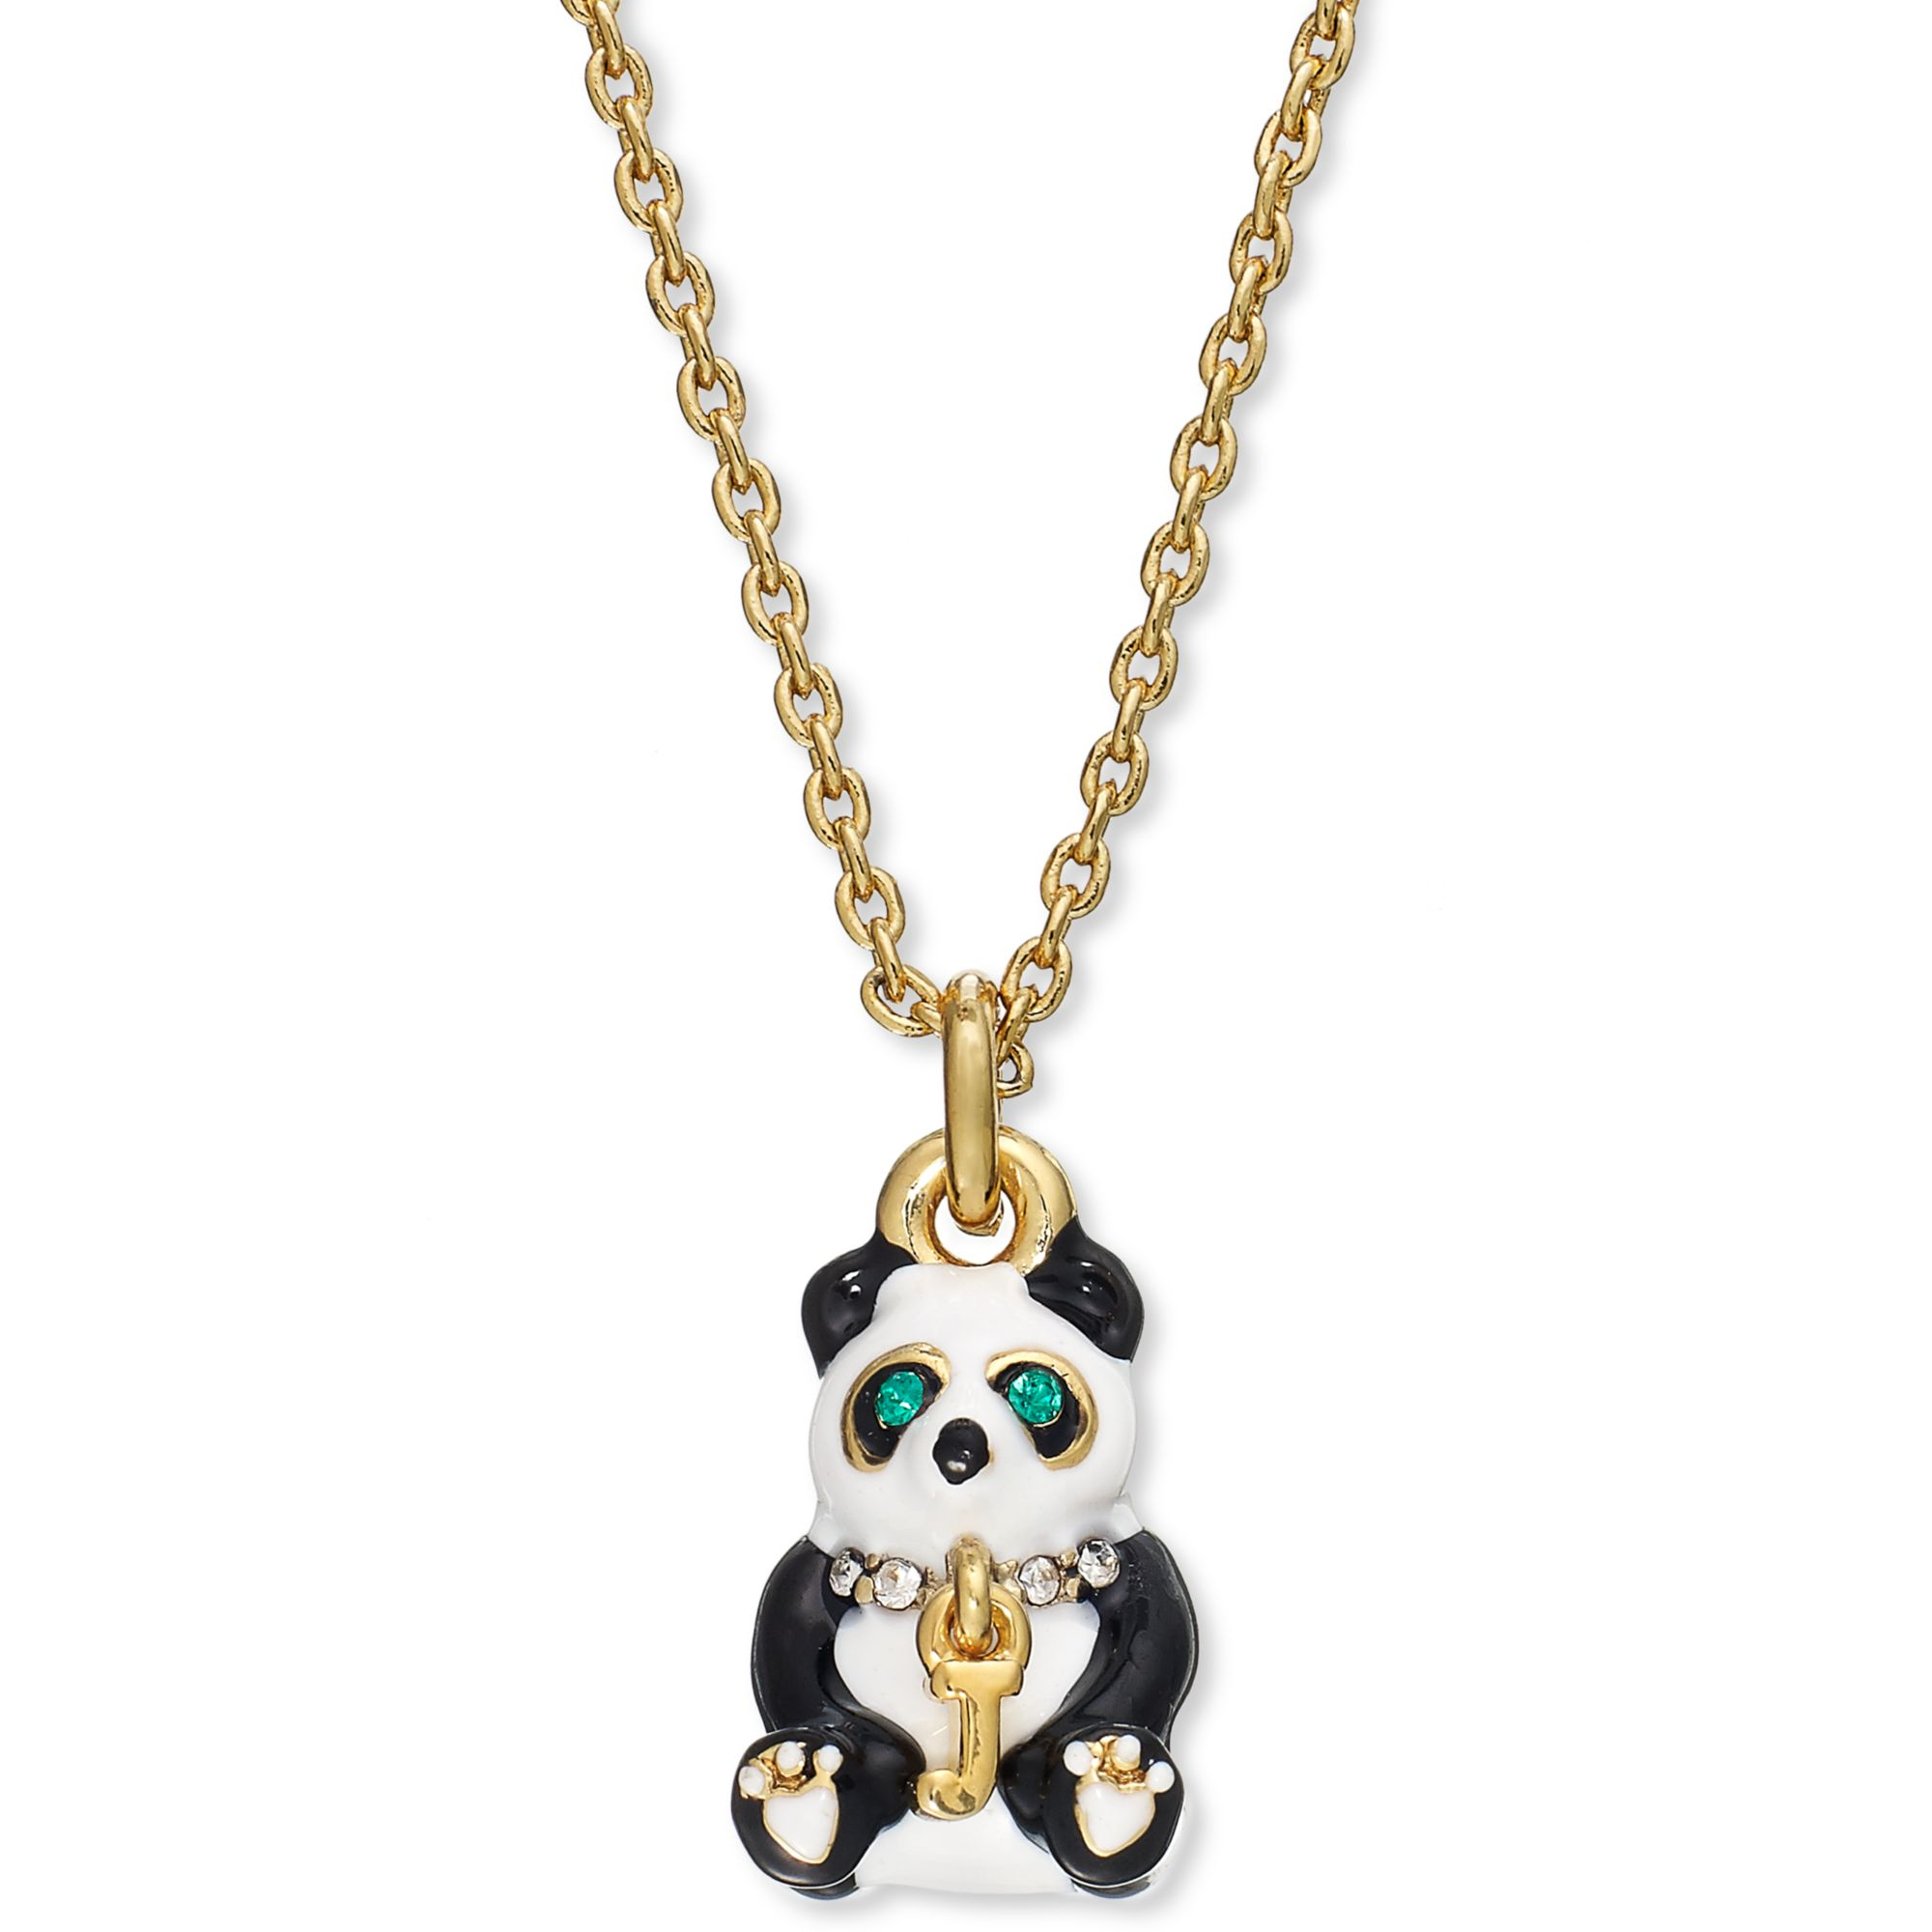 Juicy Couture Goldtone Panda Charm Necklace in Gold | Lyst